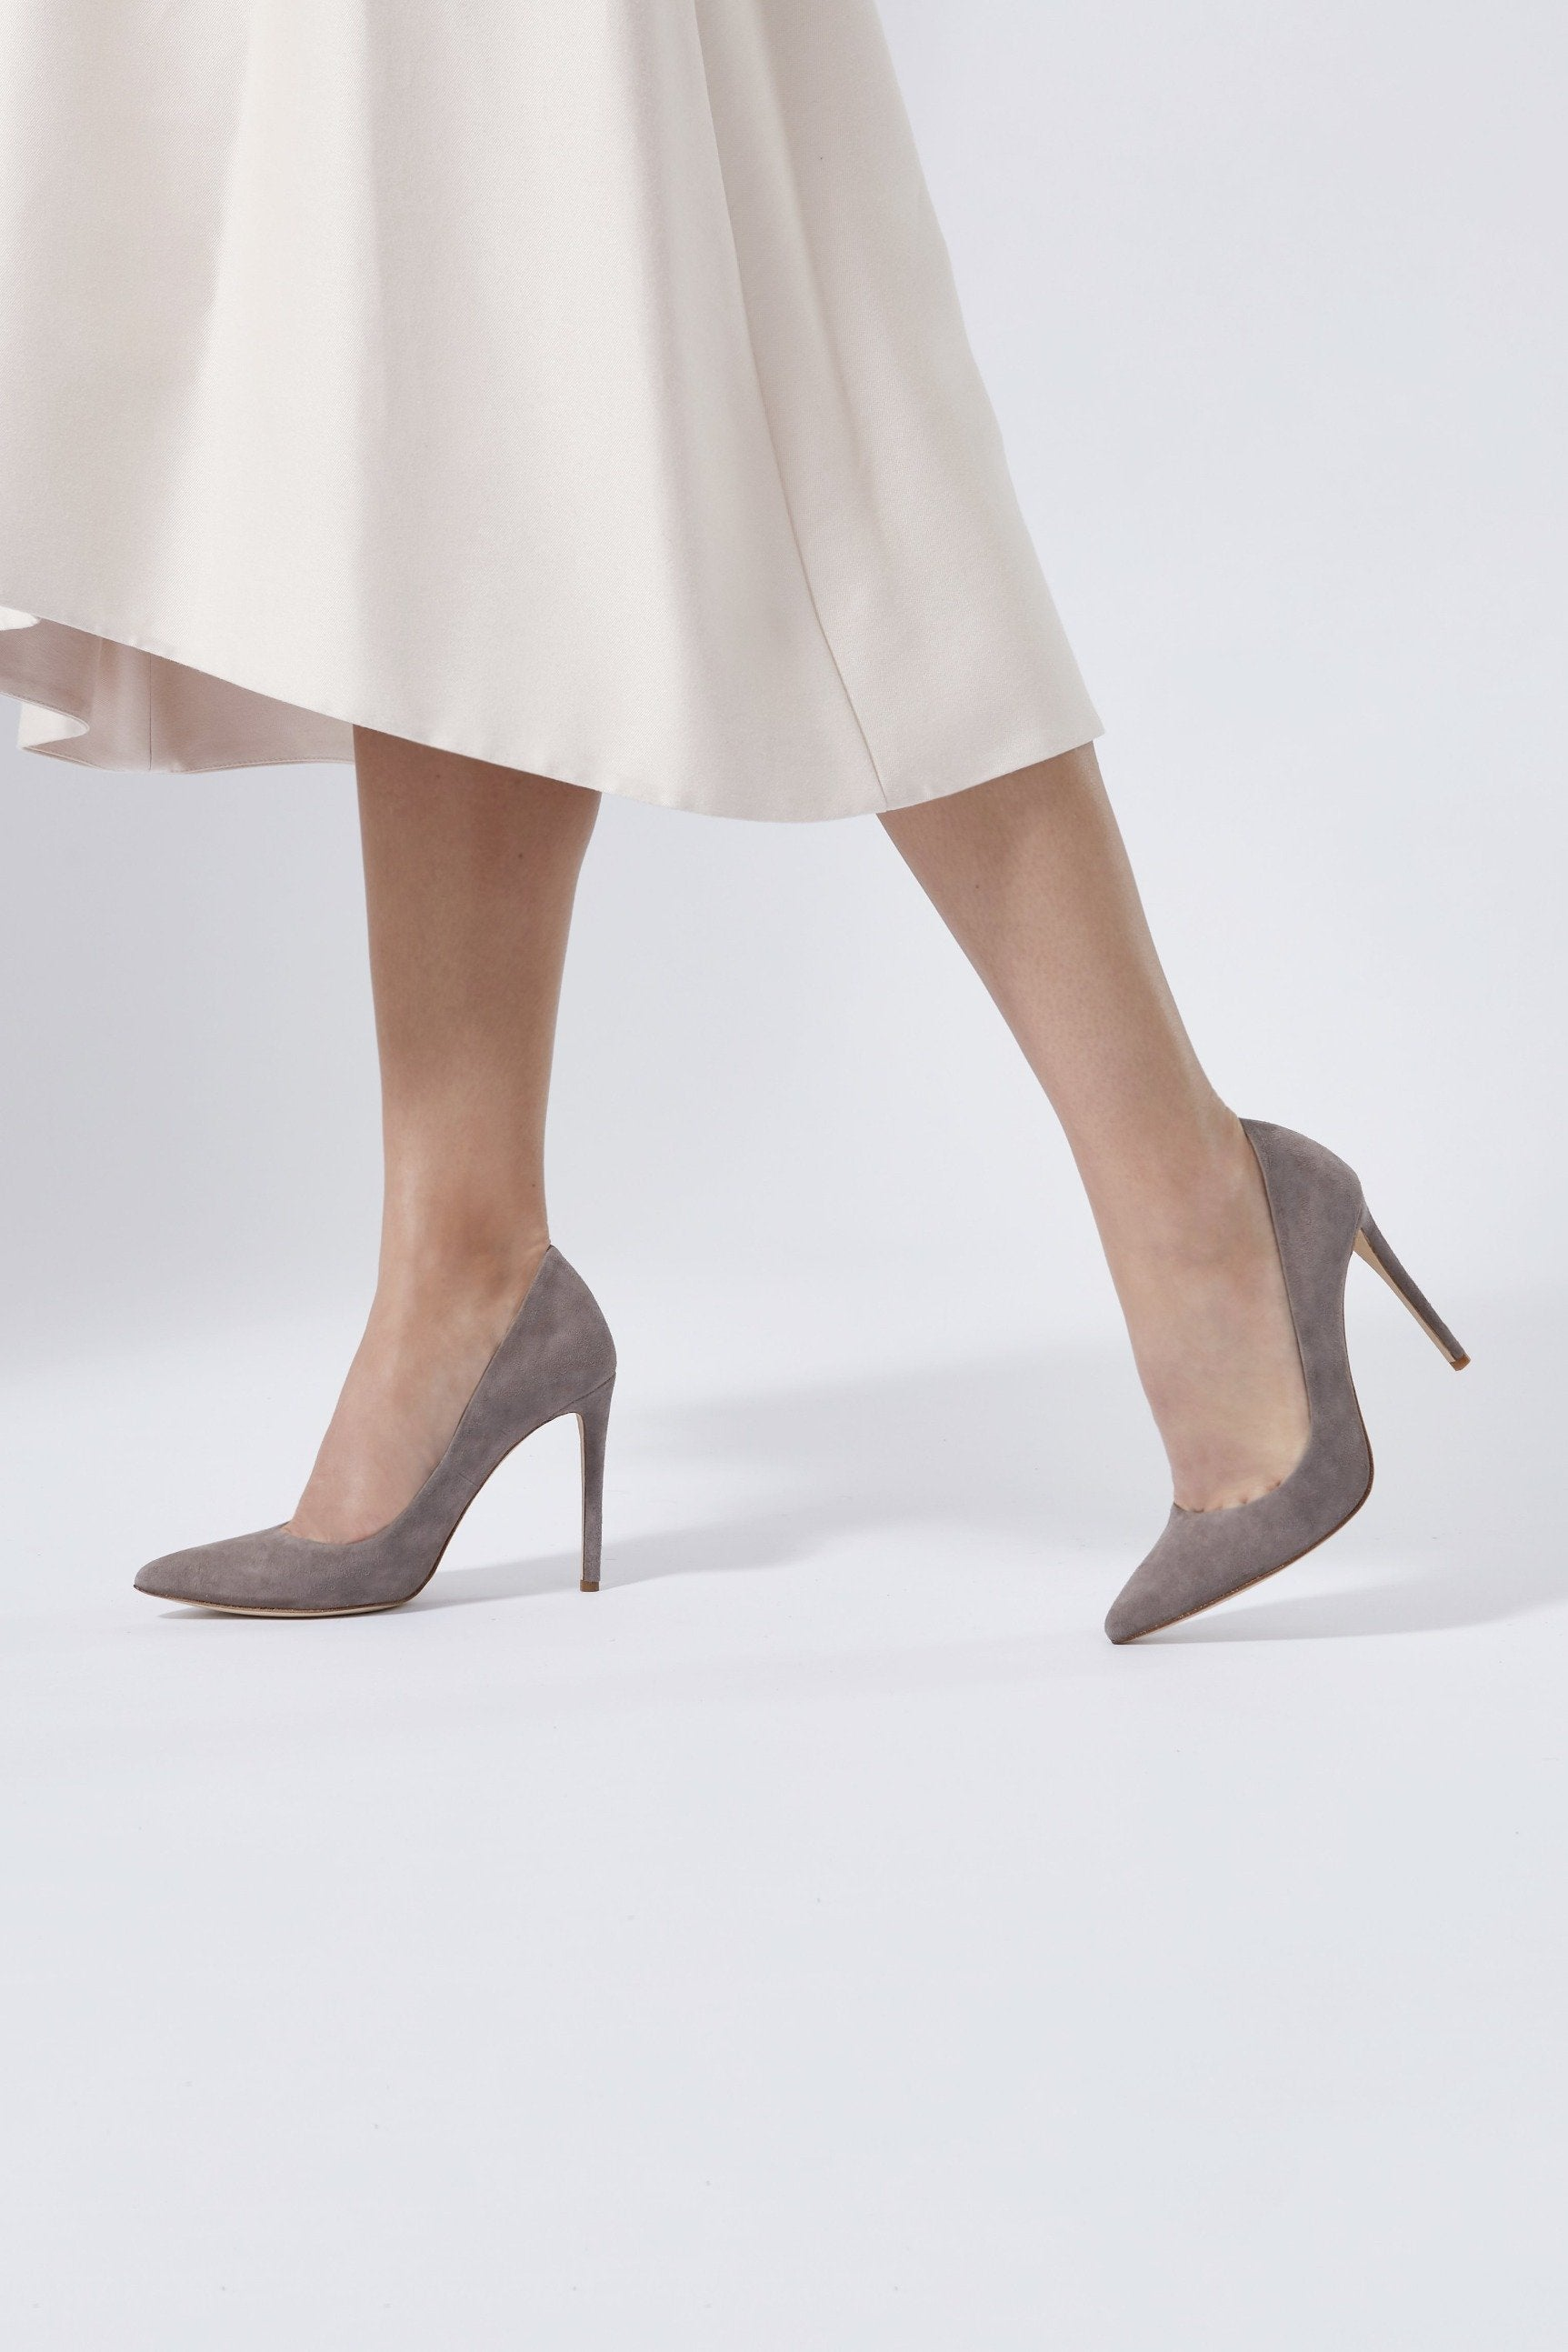 41d48247905 ... Emmy London Rebecca Pointed Court Shoe in a Warm Grey Suede ...